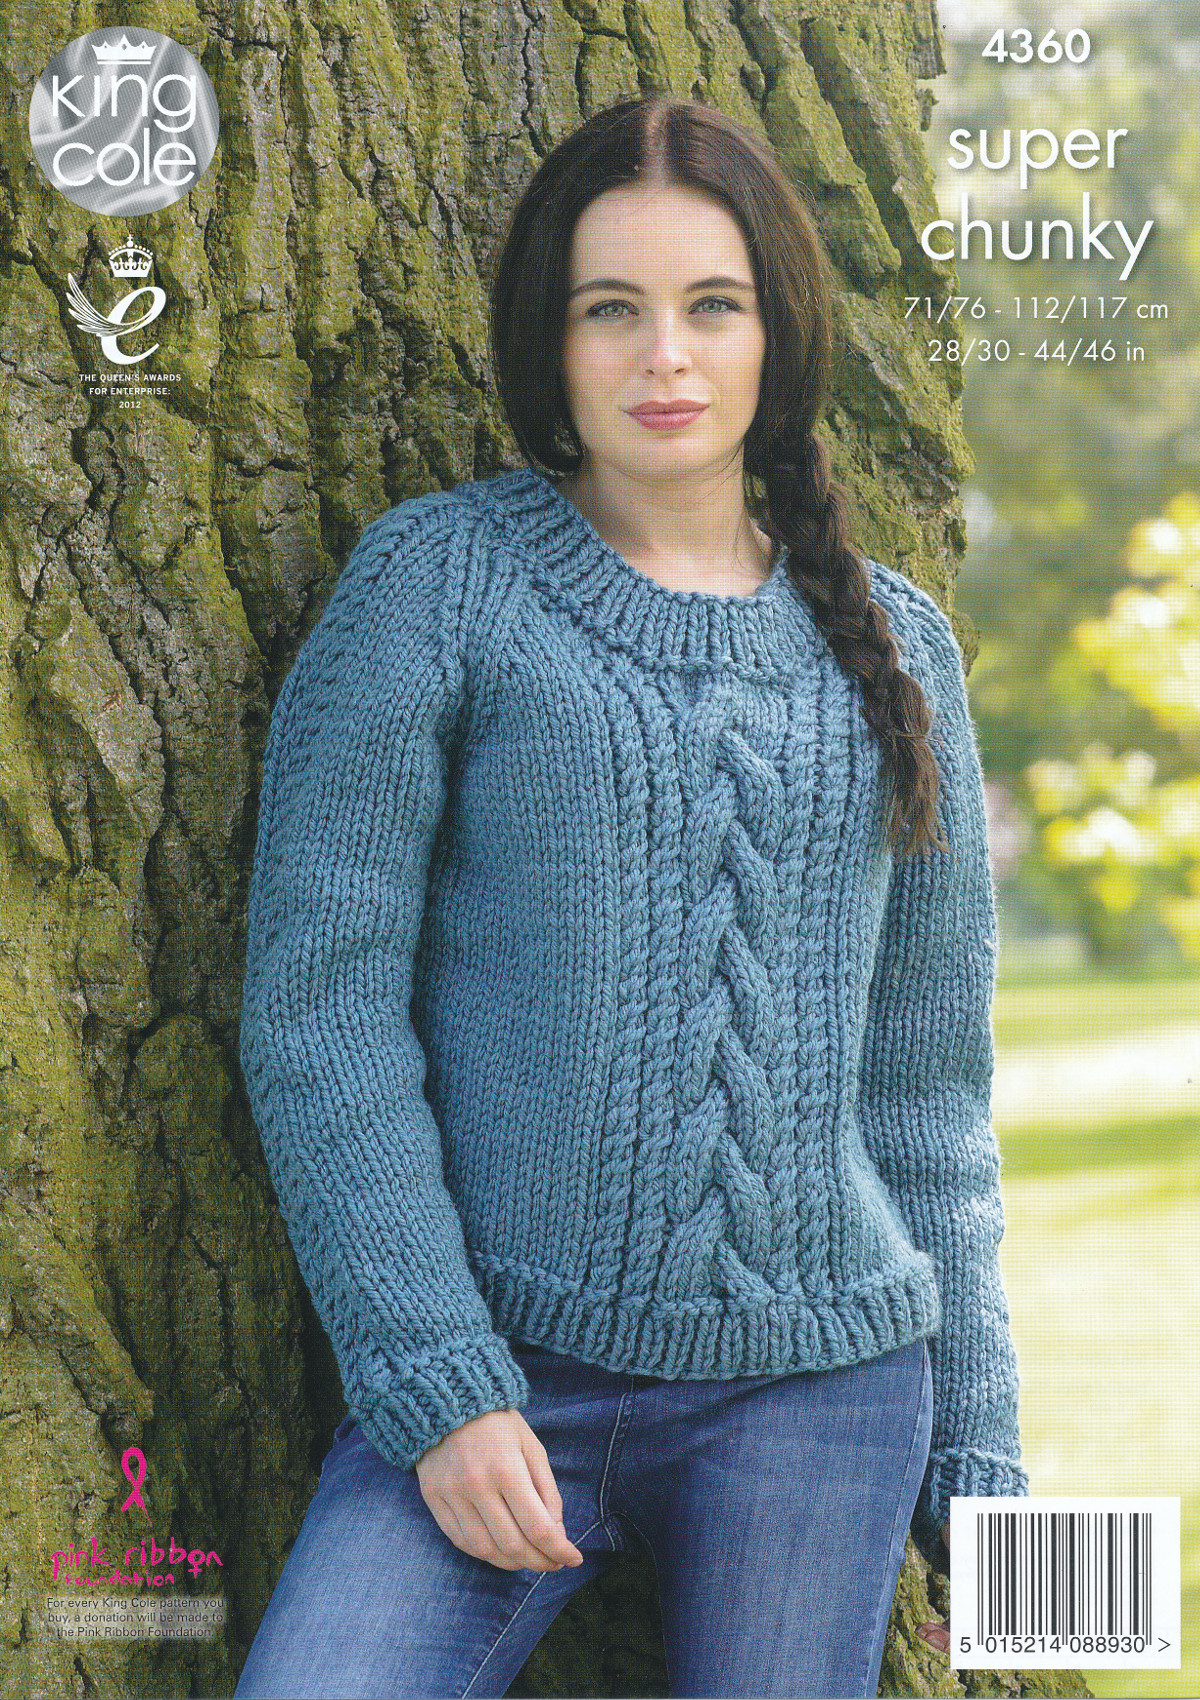 Knit Sweaters Patterns Details About Ladies Super Chunky Knitting Pattern King Cole Cable Knit Sweaters Jumpers 4360